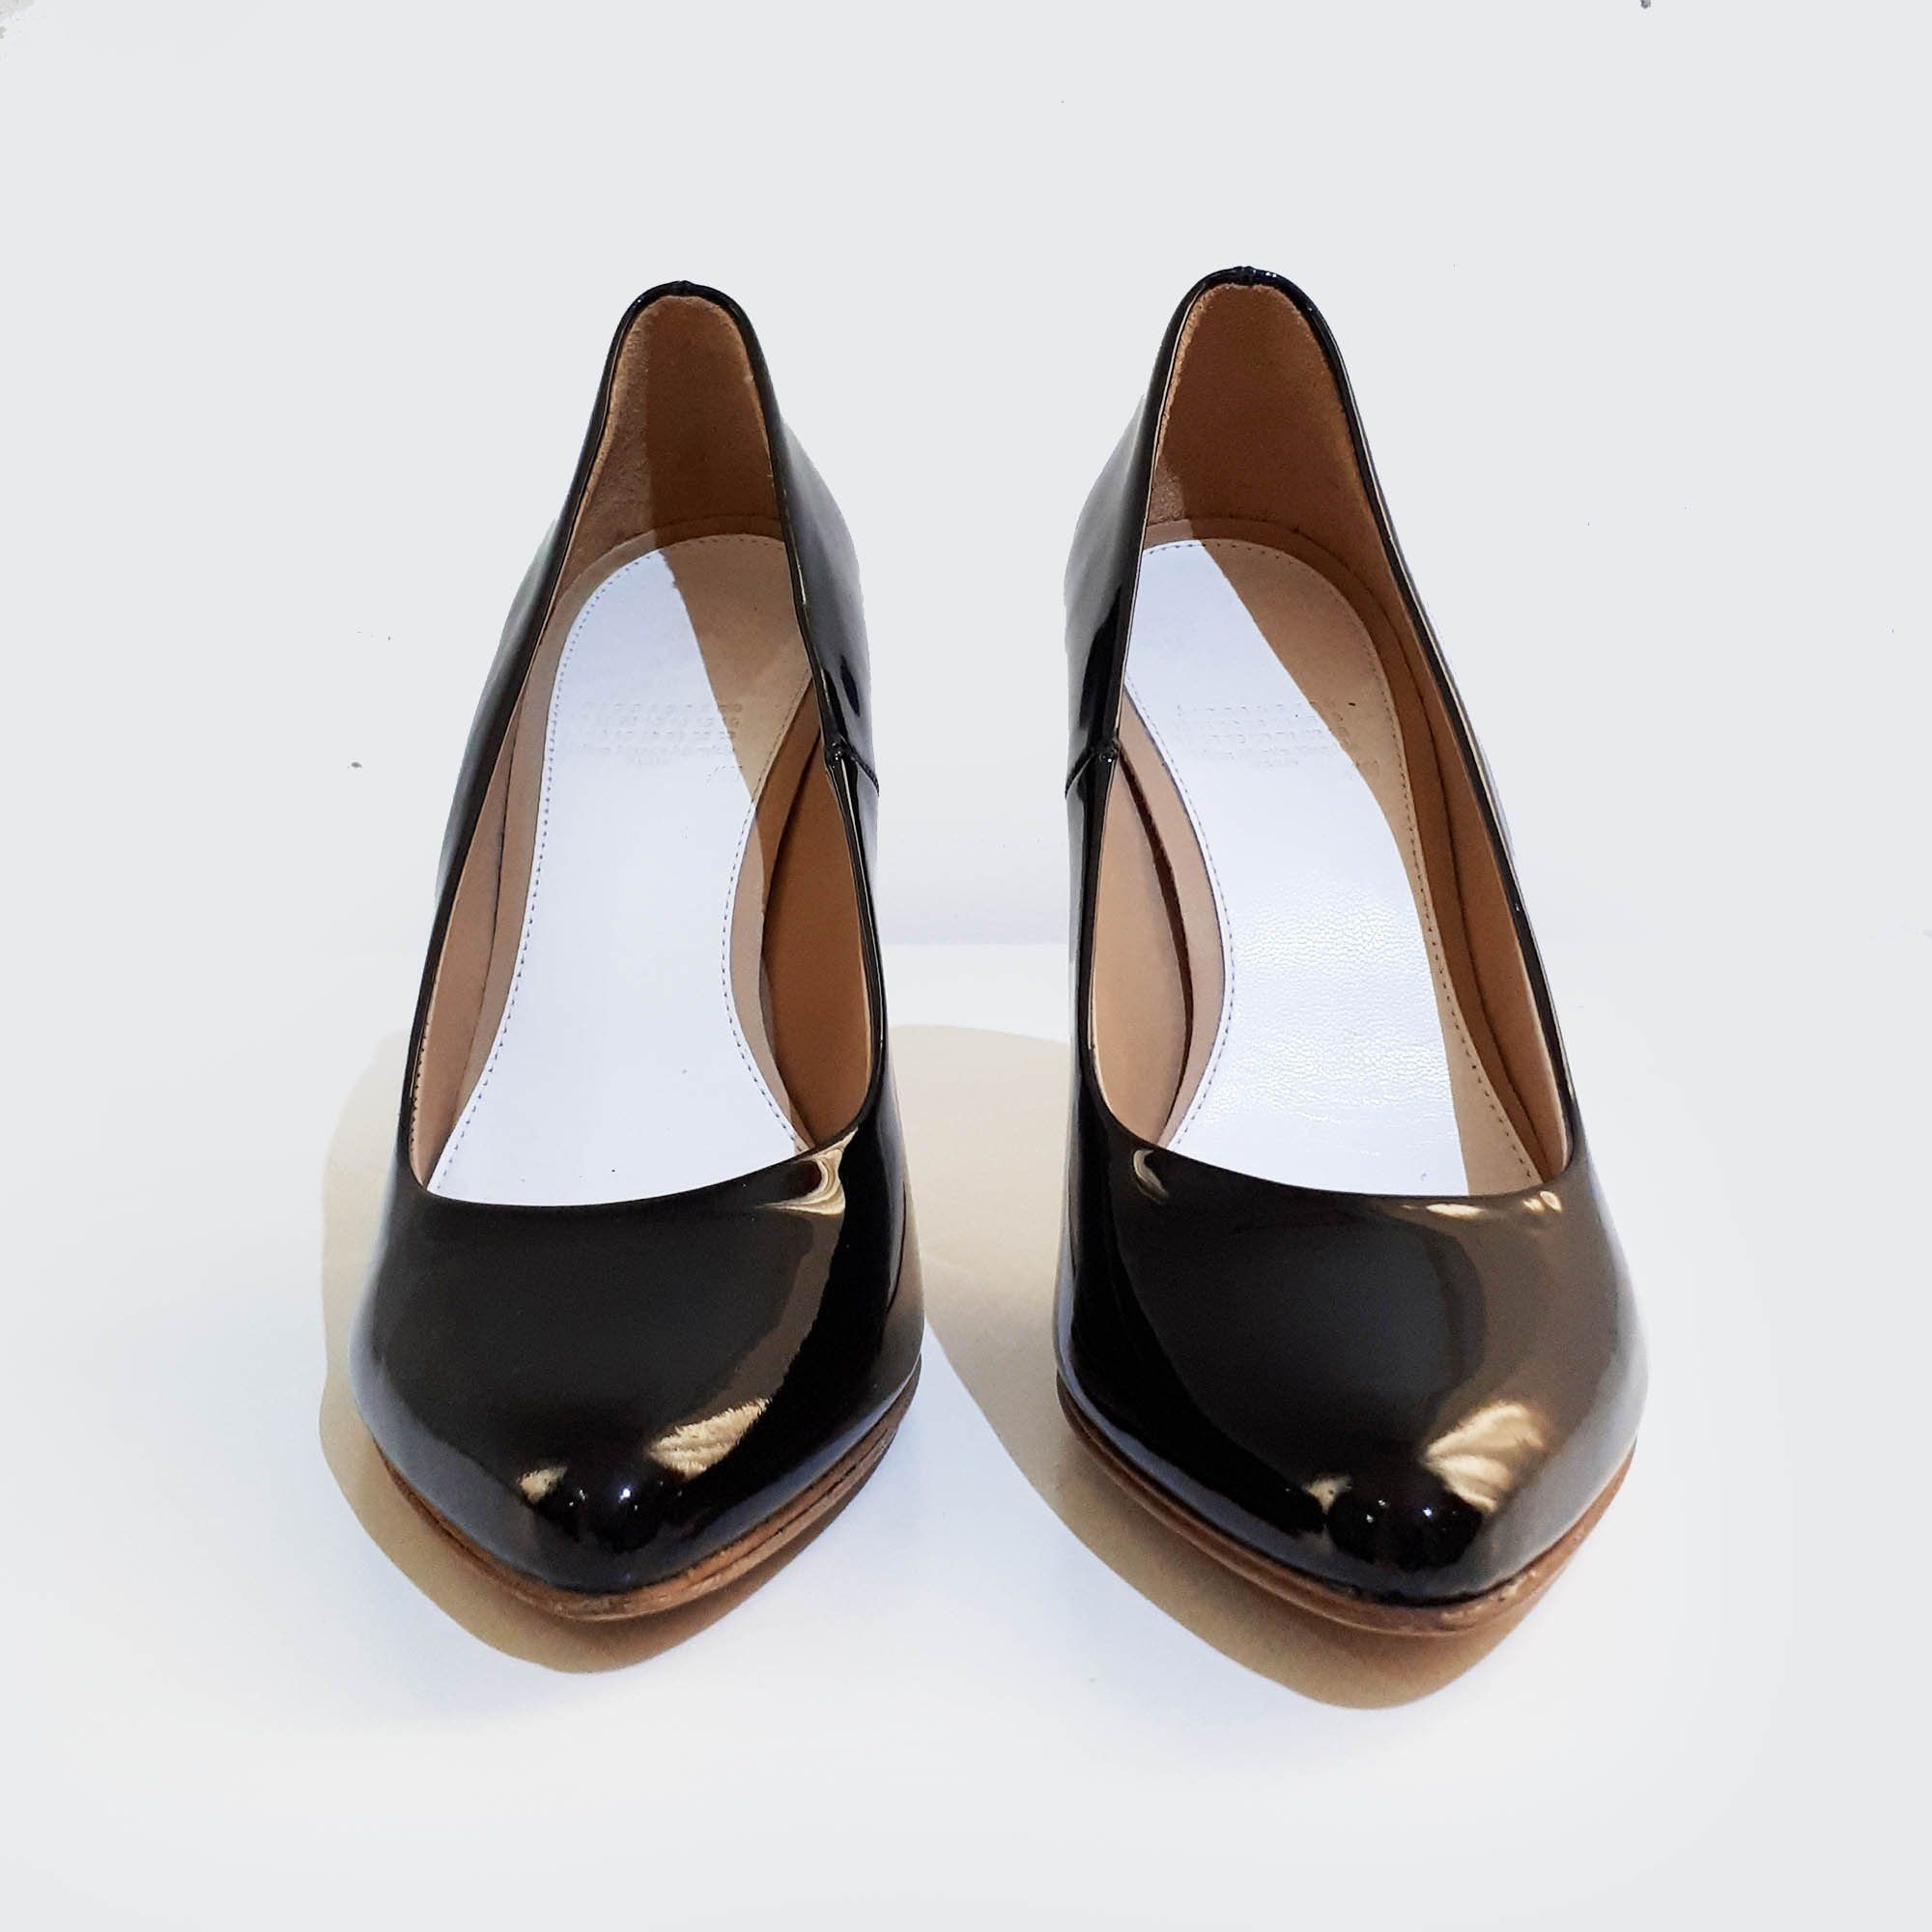 Maison Martin Margiela for H&M Black Wedge Pumps